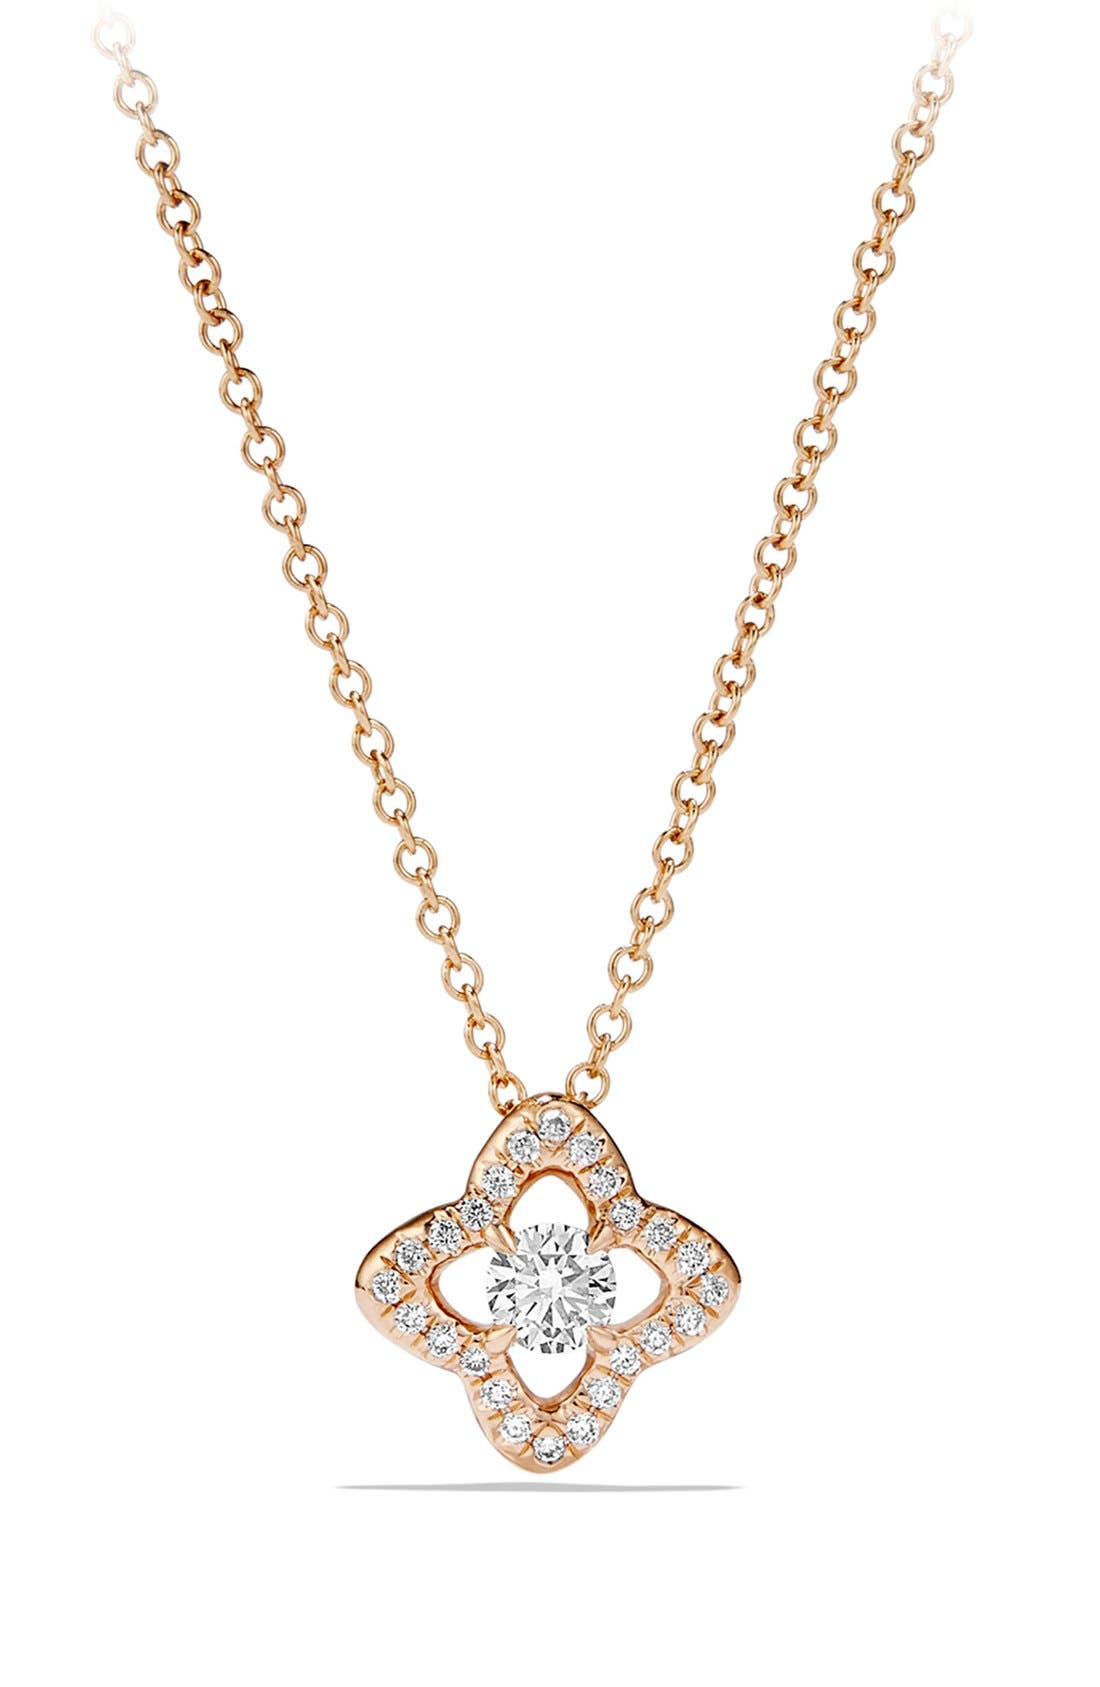 'Venetian Quatrefoil' Necklace with Diamonds in Gold,                         Main,                         color, ROSE GOLD